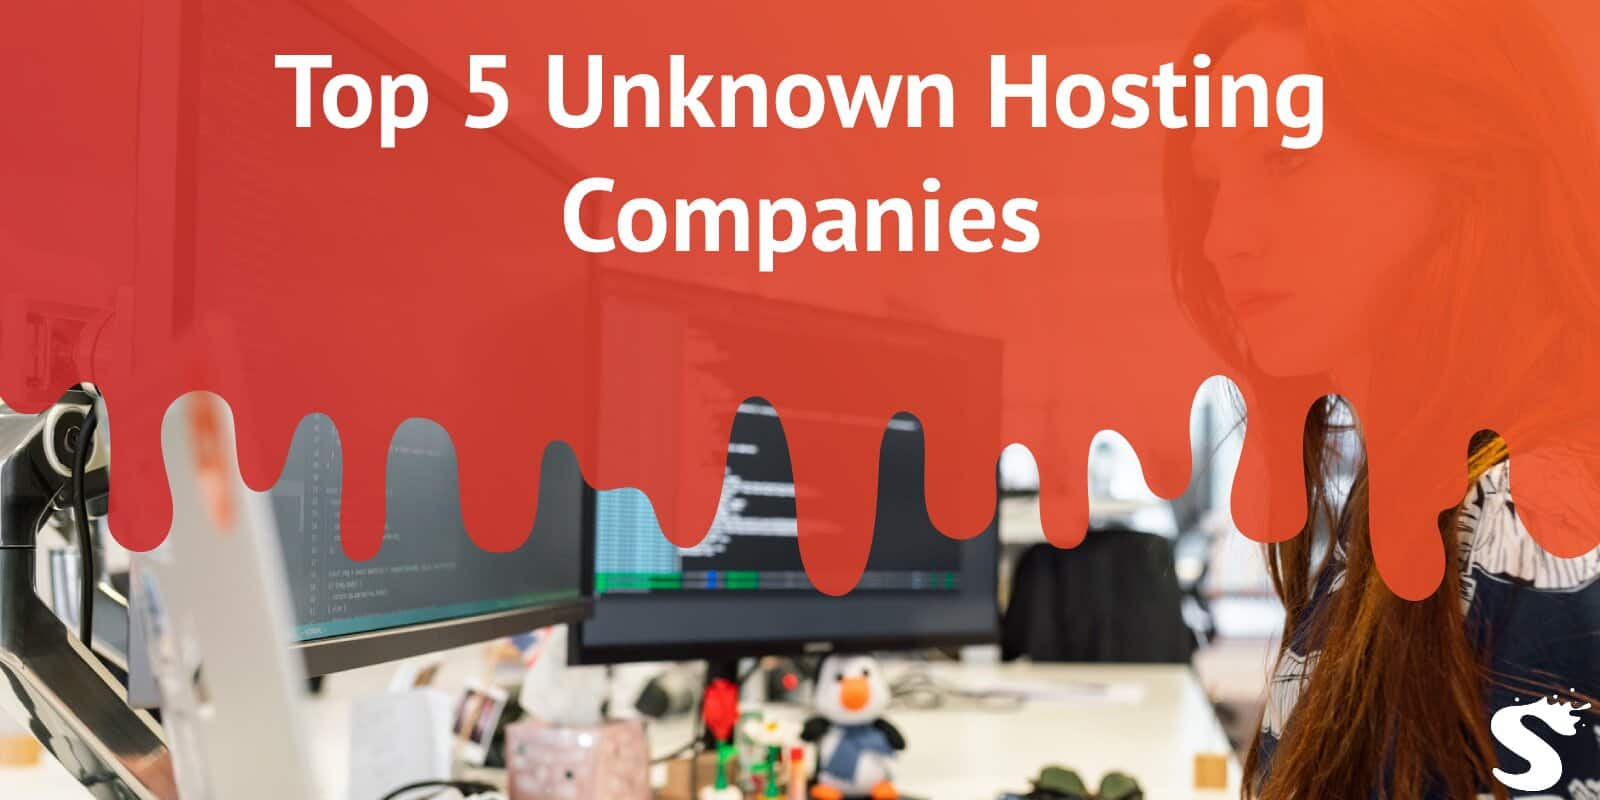 Top 5 Unknown Hosting Companies